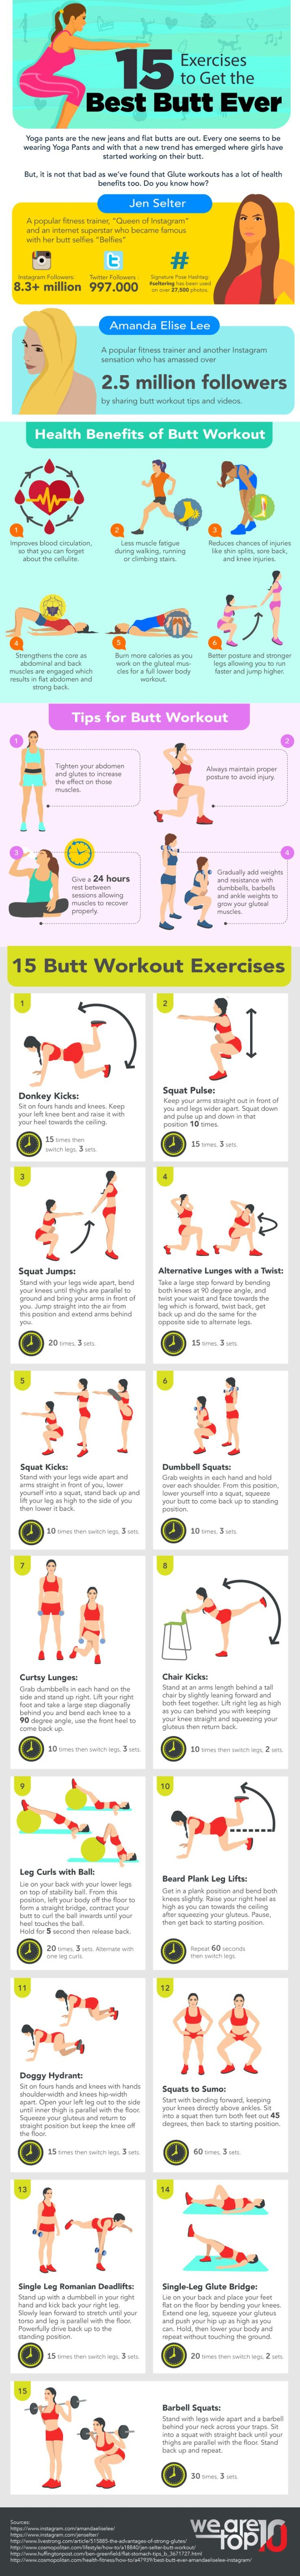 15 Exercises to Get the Best Butt Ever #Infographic #Fitness #Health #Yoga